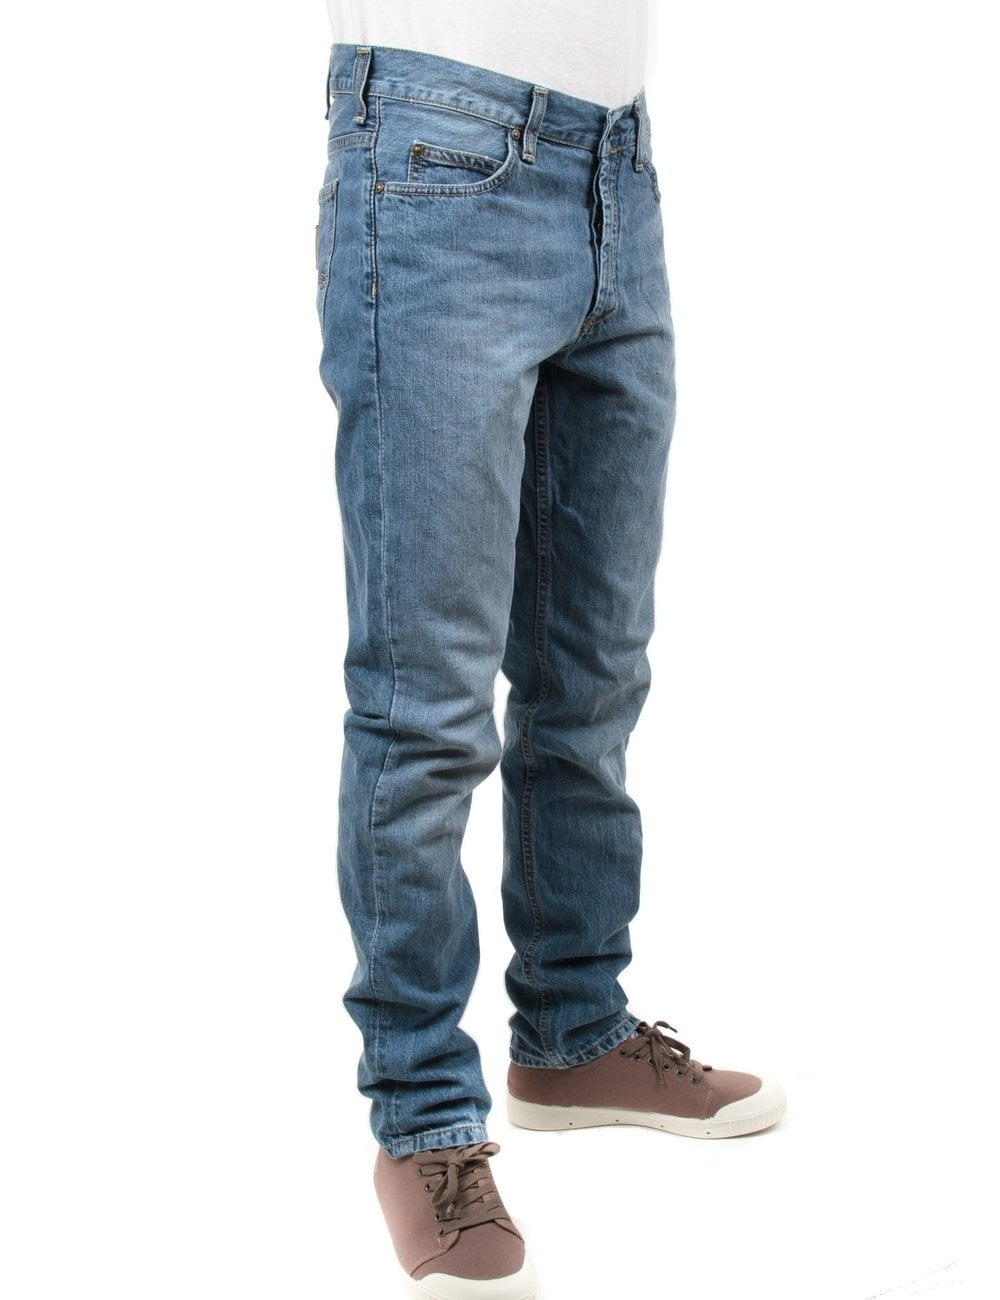 ad922311 Carhartt WIP Texas Pant II - Blue Pier Wash - Clothing from Fat ...